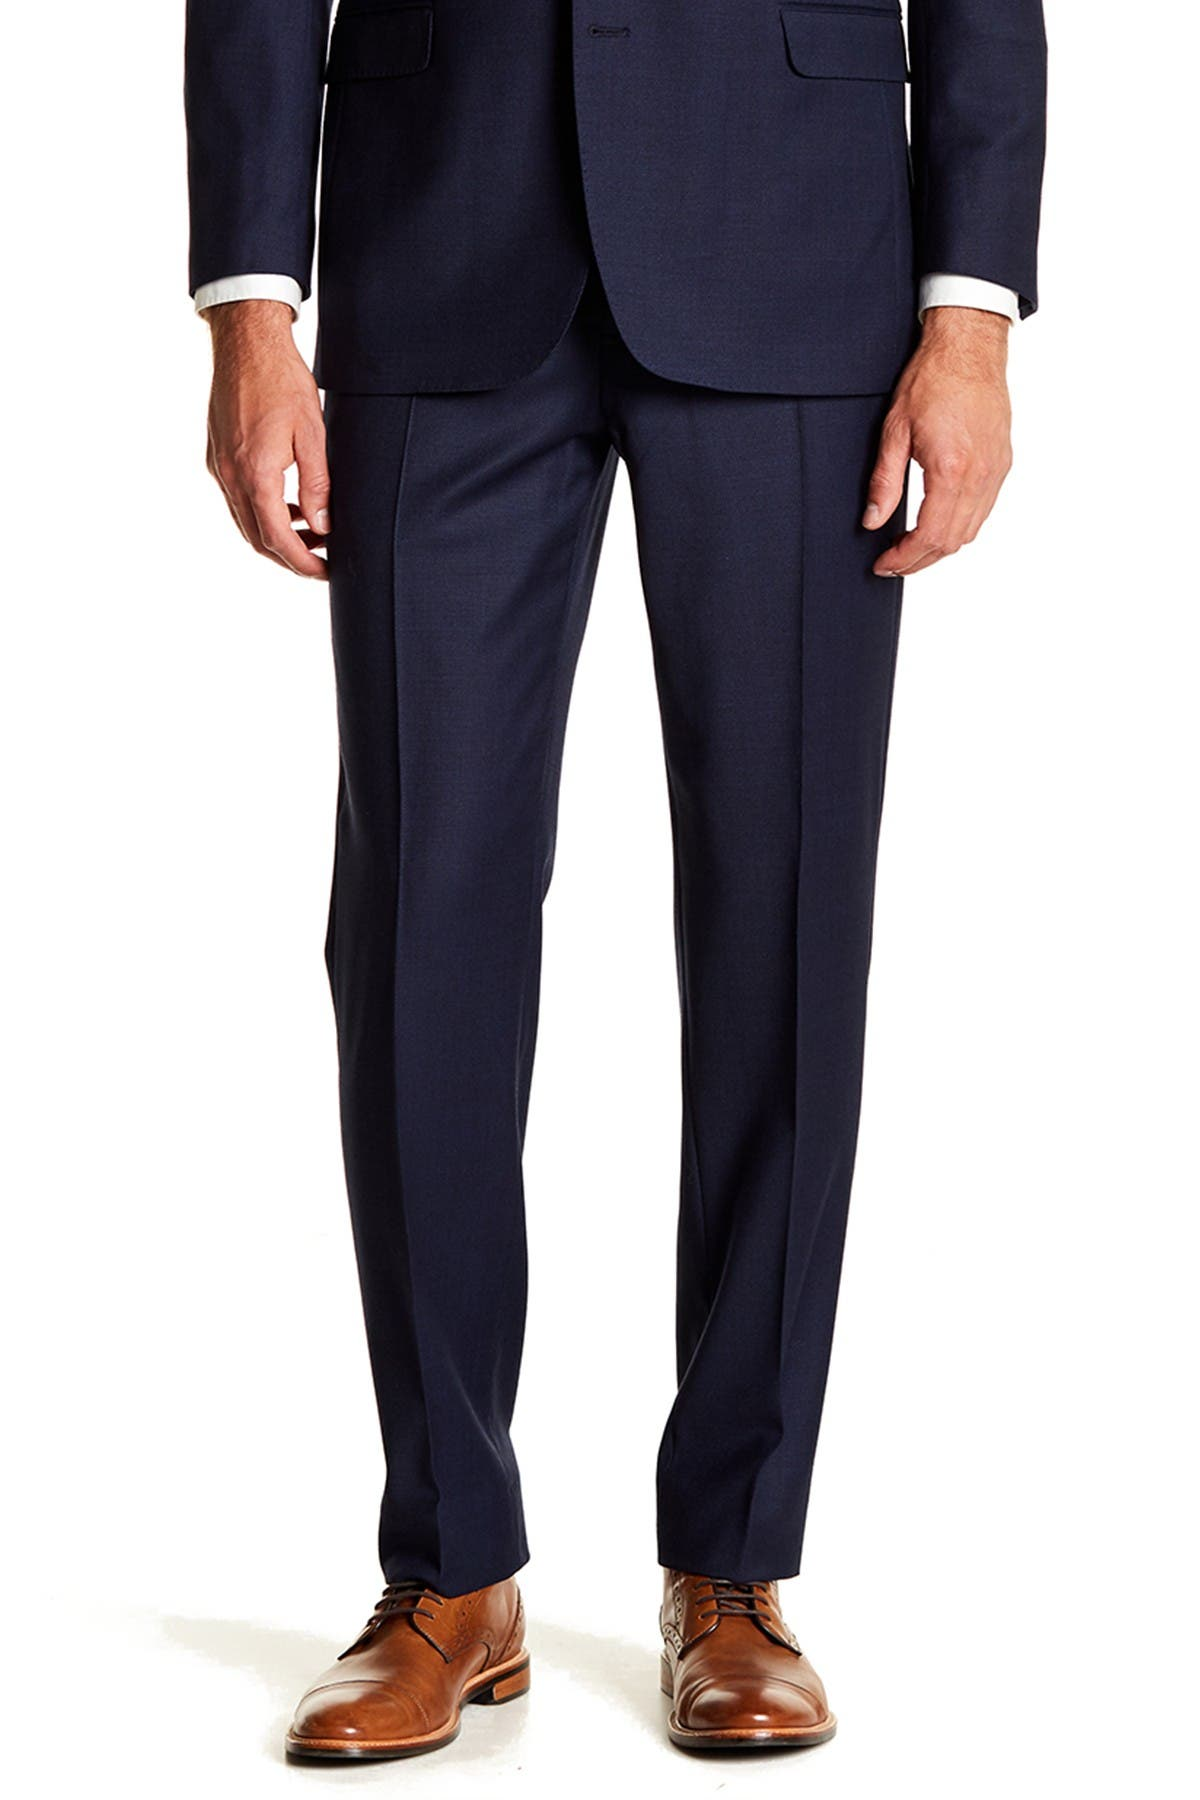 """Image of Brooks Brothers Flat Front Regent Fit Pants - 30-34"""" Inseam"""